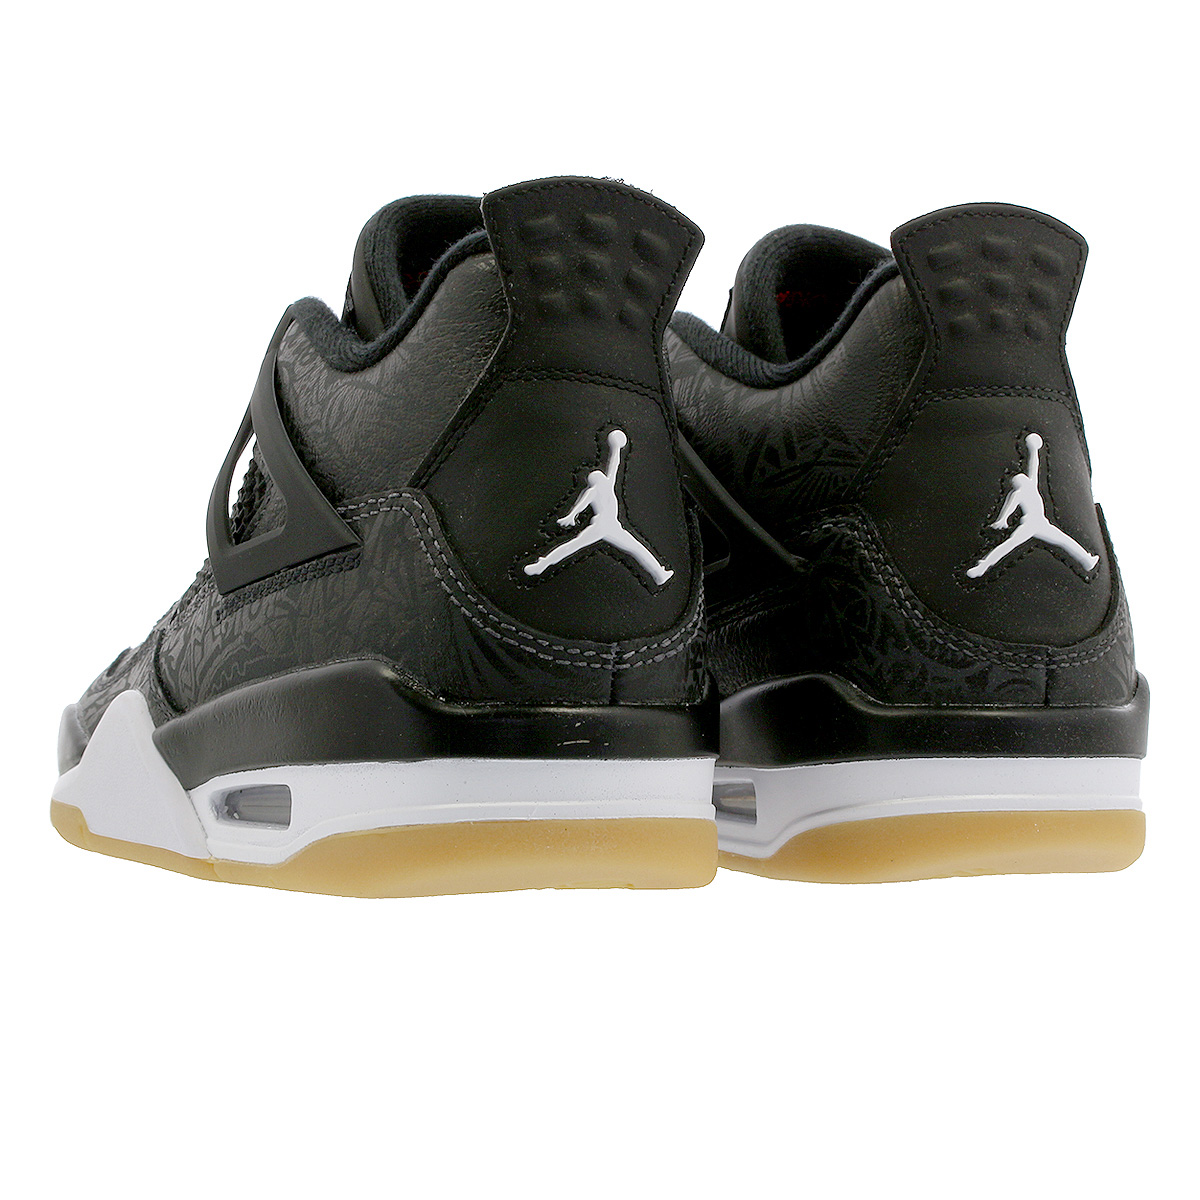 946b9827e67 ... NIKE AIR JORDAN 4 RETRO SE GS Nike Air Jordan 4 nostalgic SE GS BLACK/  ...